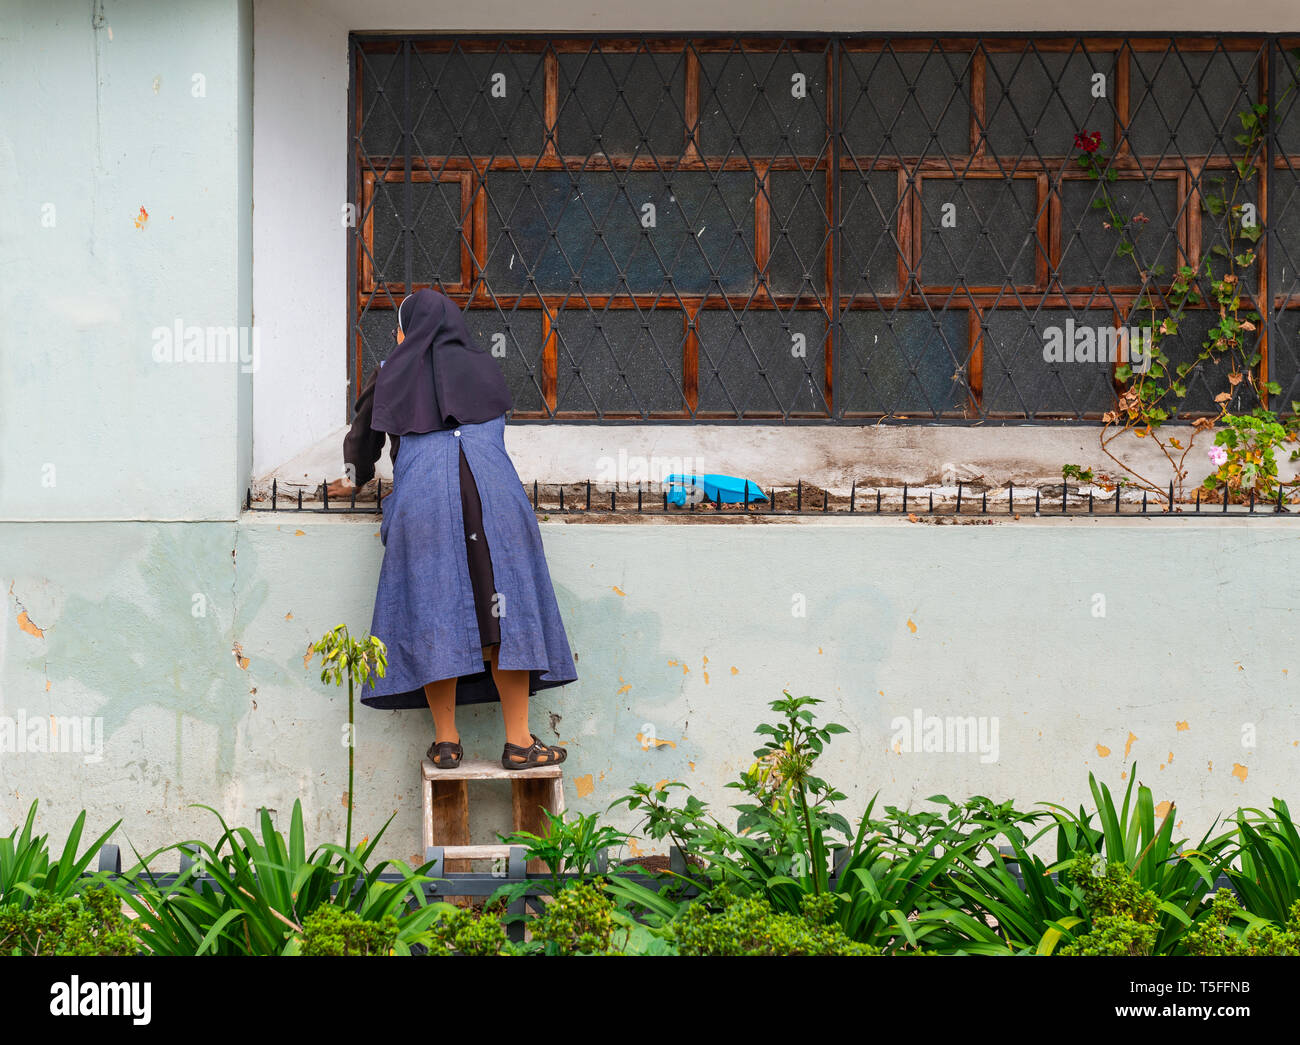 Catholic nun with habit cleaning the outside part of a convent in the city center of Cuenca, Ecuador. - Stock Image